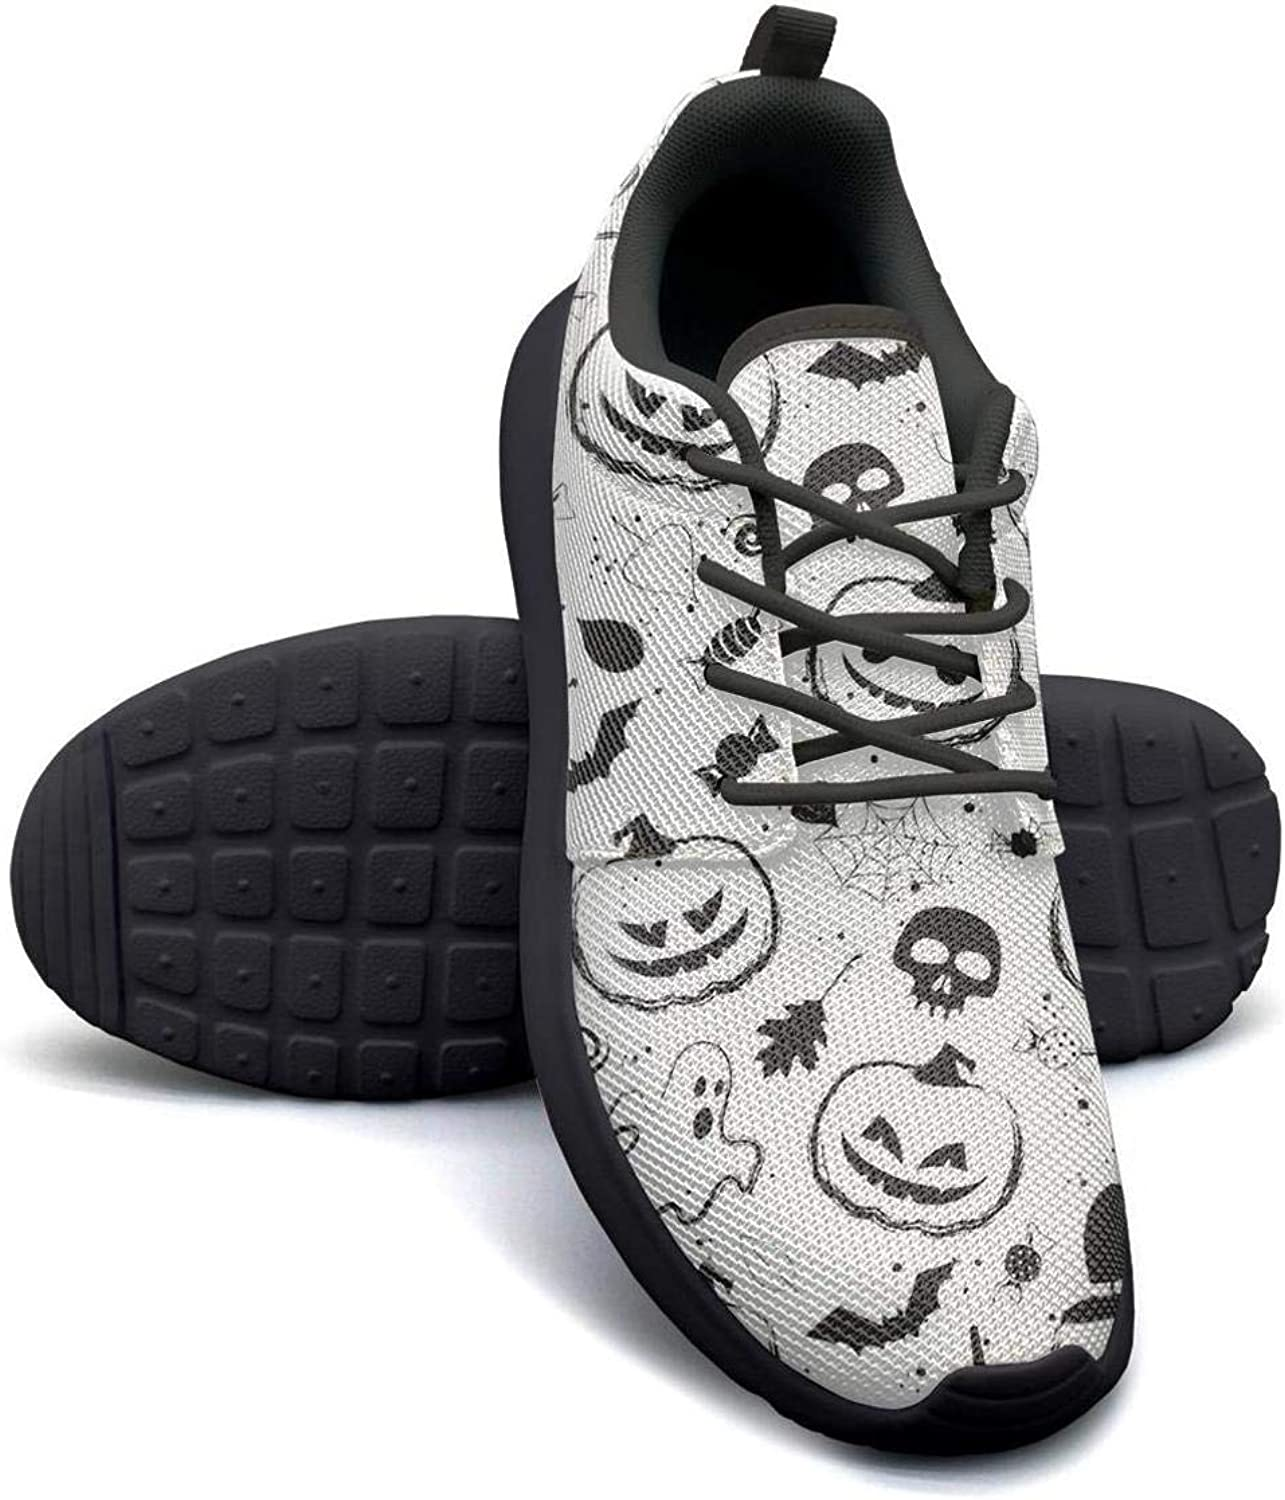 Gjsonmv Halloween Pumpkin Black White mesh Lightweight shoes for Women Casual Sports Driving Sneakers shoes